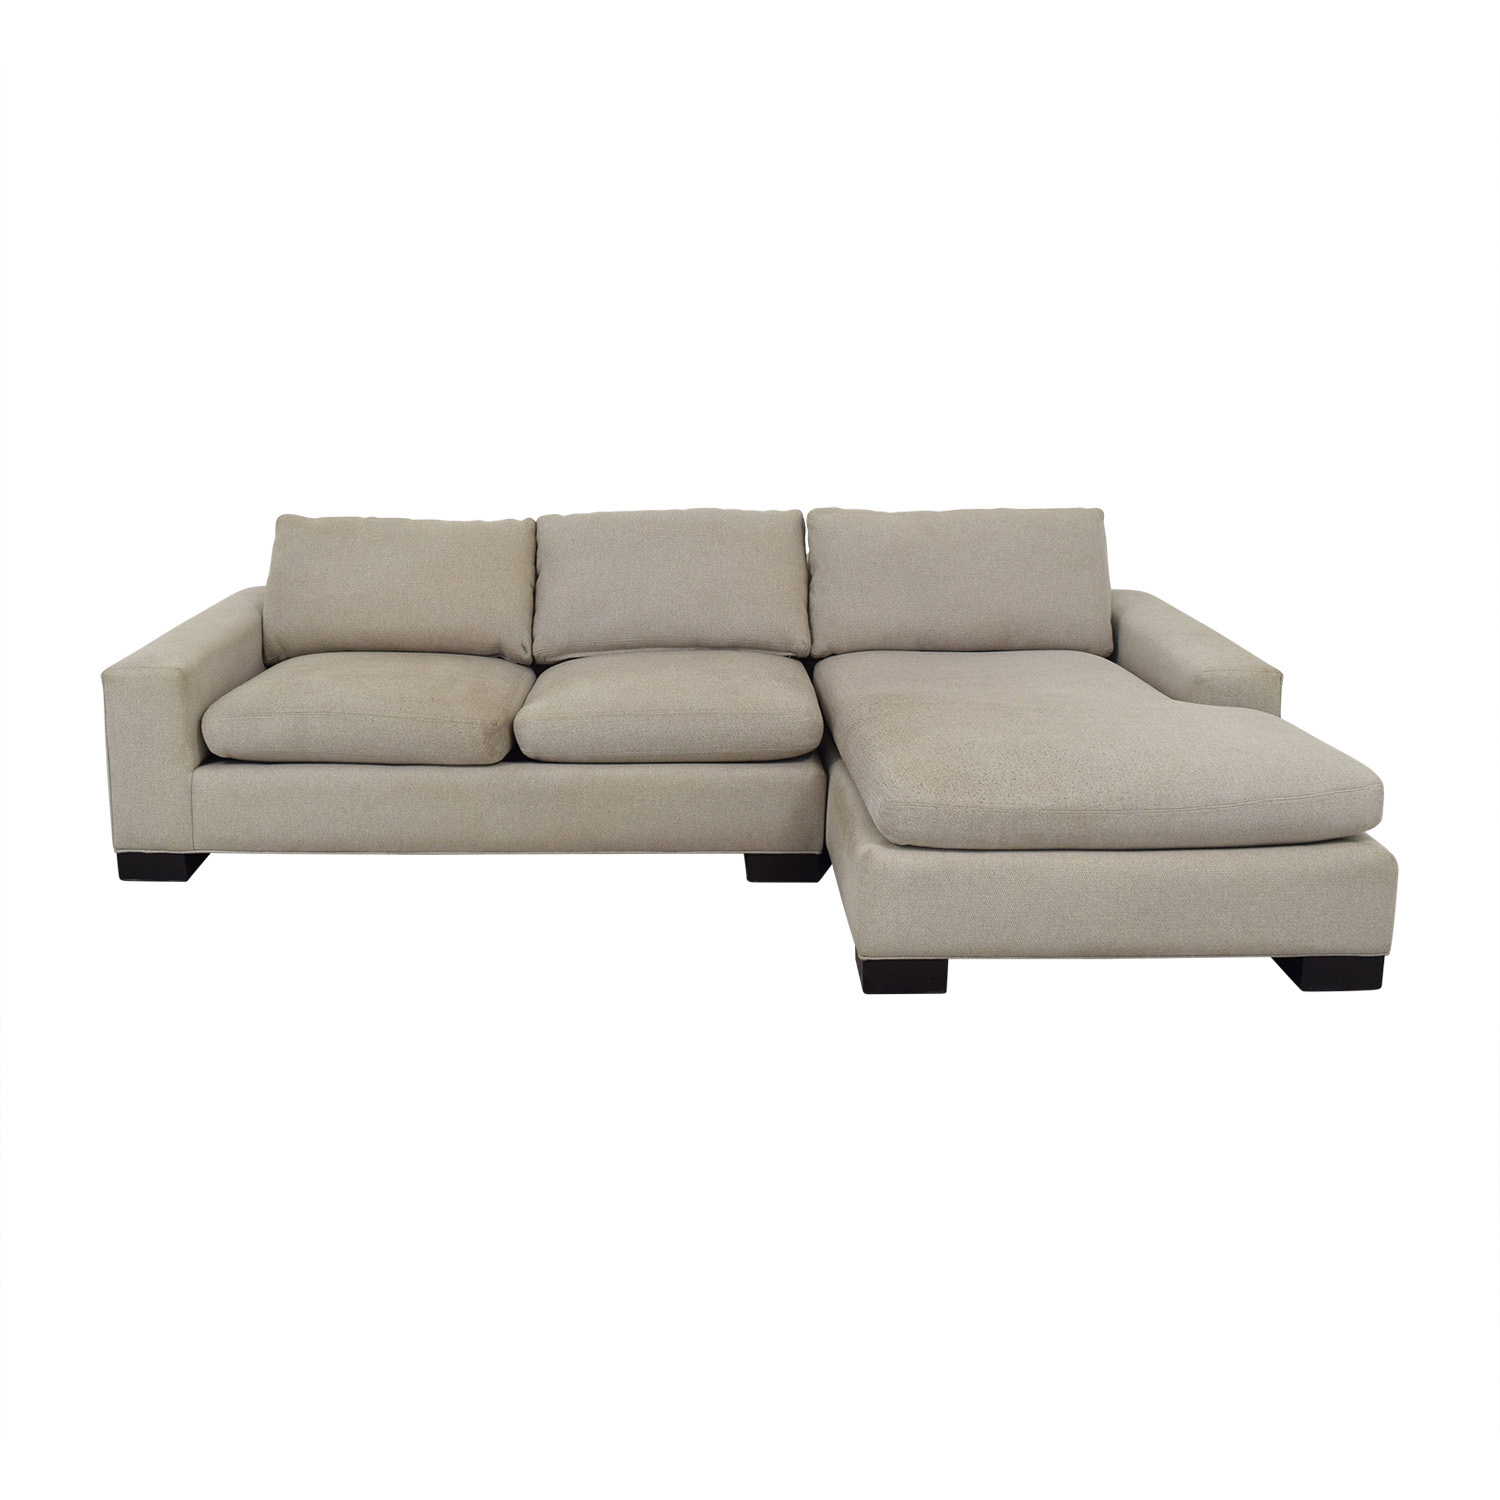 shop Room & Board Room & Board Chaise Sectional Sofa online